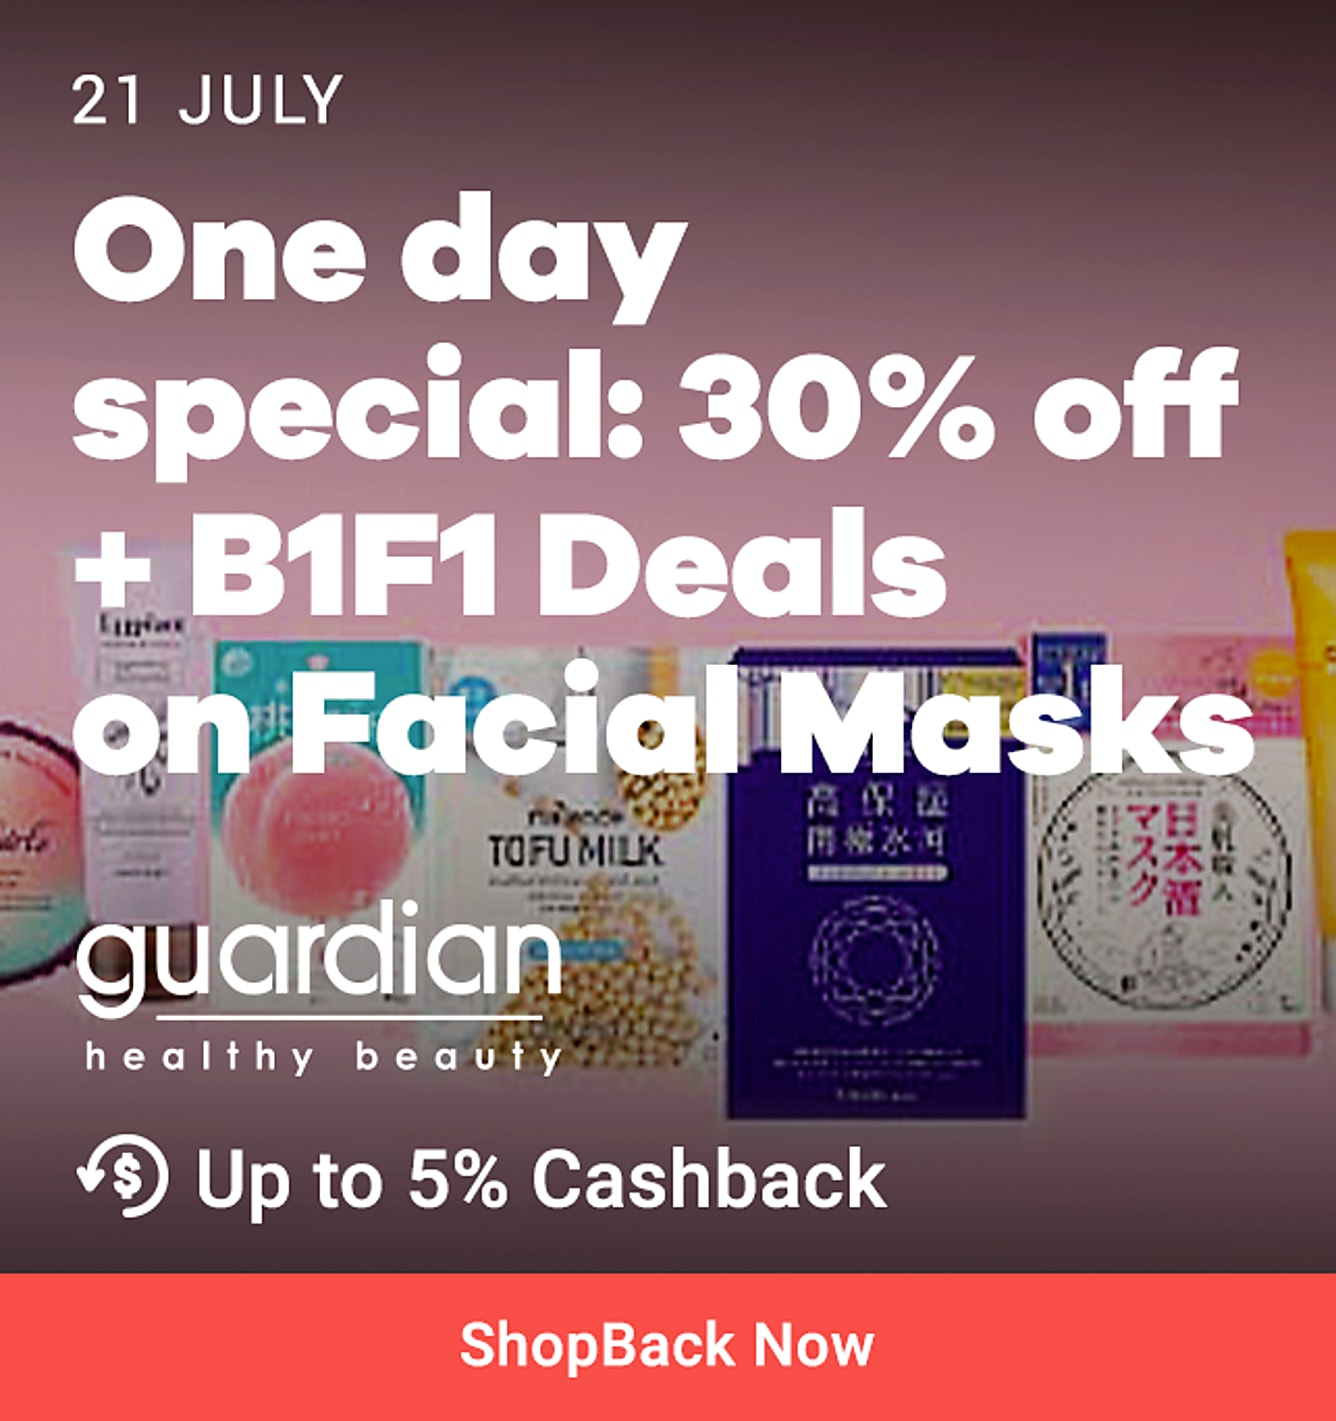 Guardian 21st July: XOXO: 1 Day Special 30% off all facial masks. B1F1 deals on facial masks